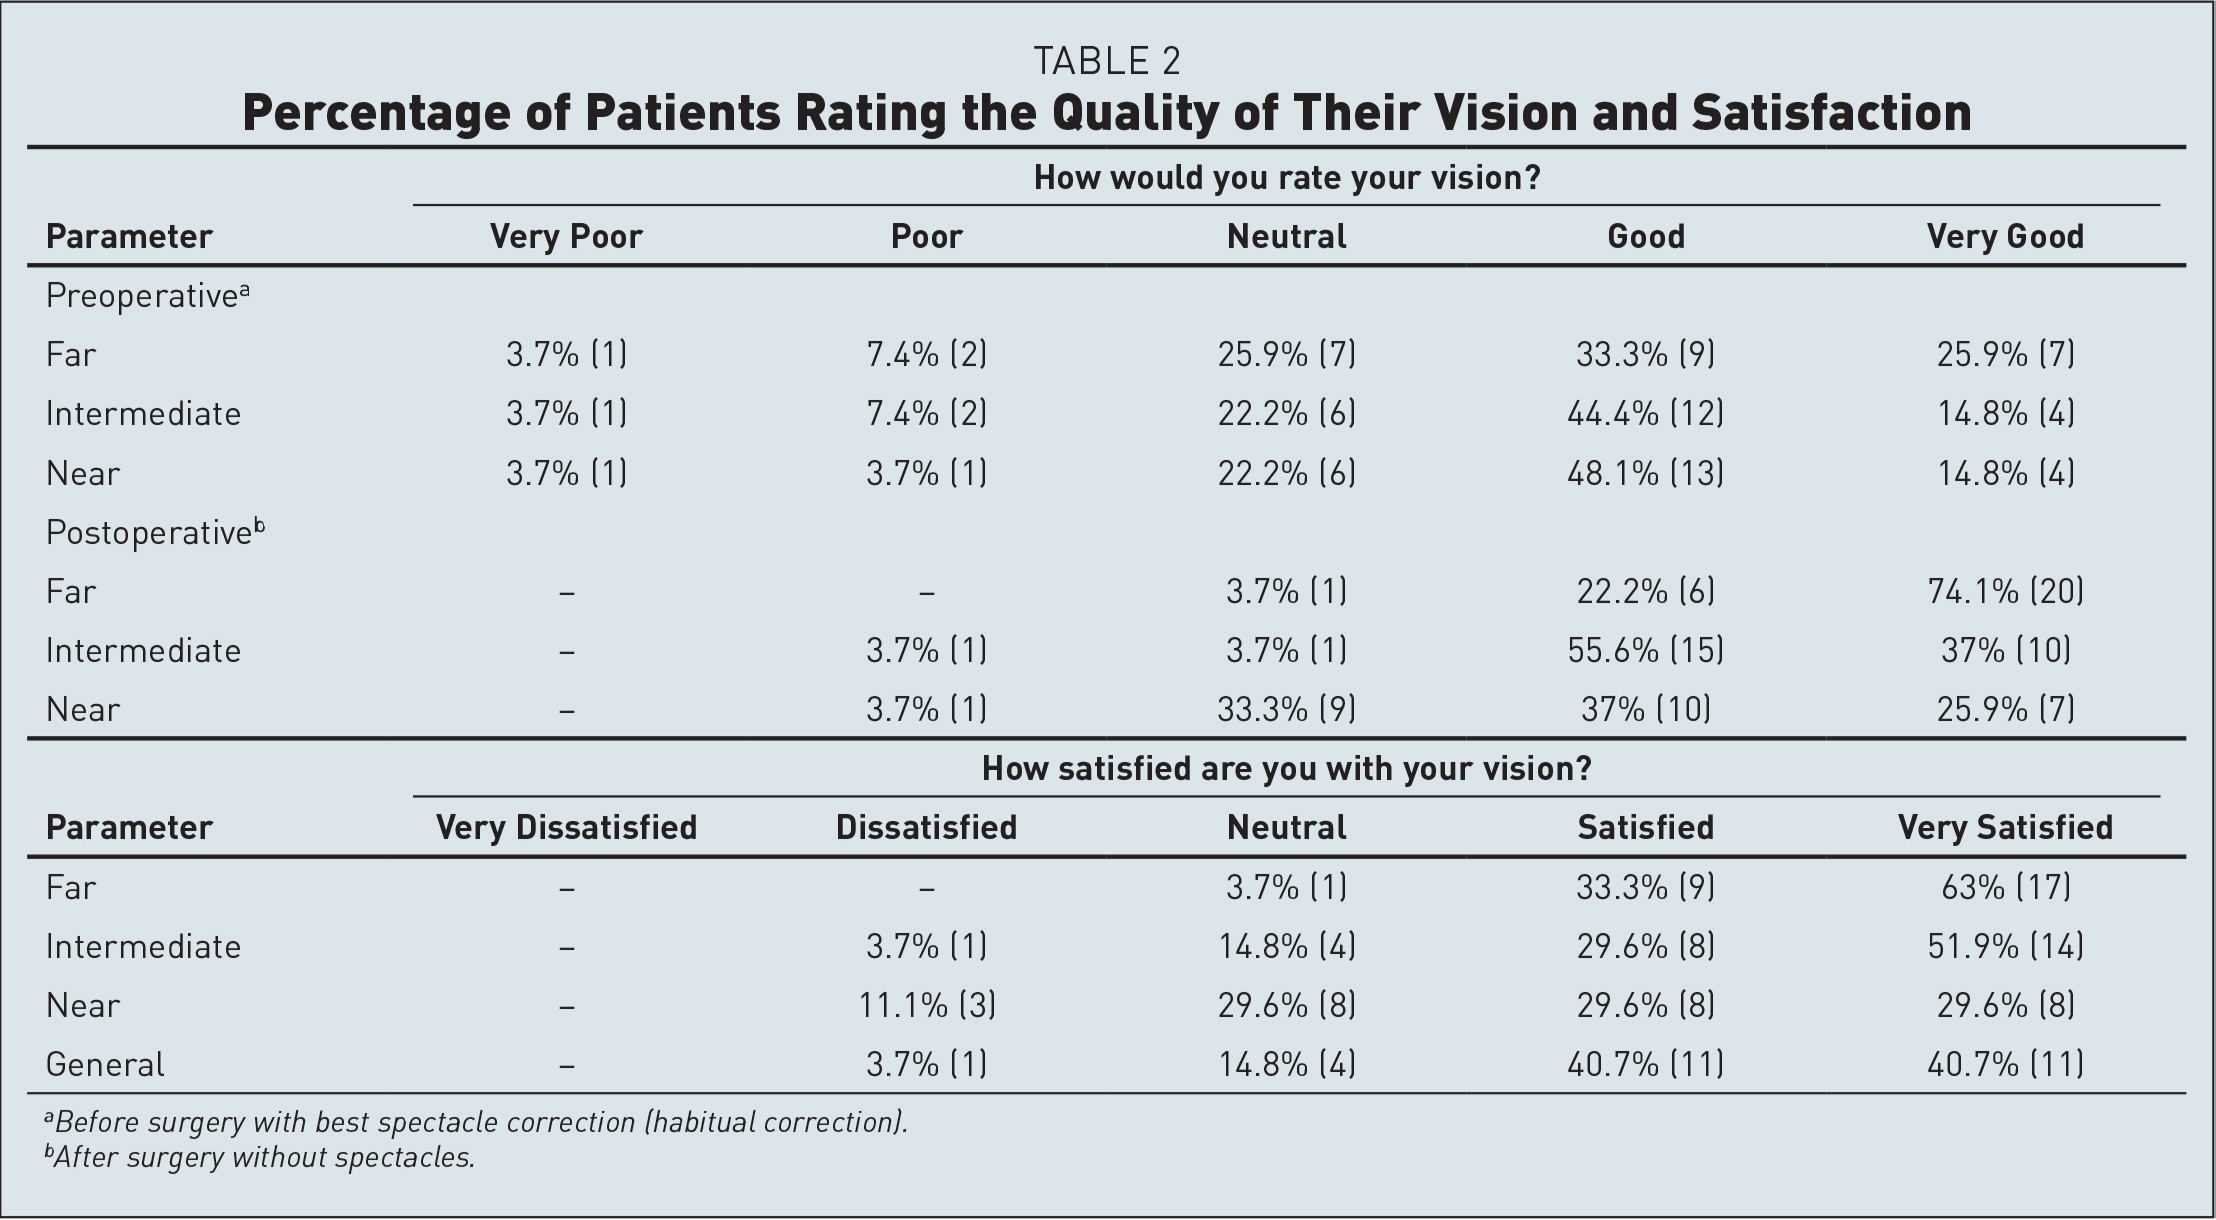 Percentage of Patients Rating the Quality of Their Vision and Satisfaction